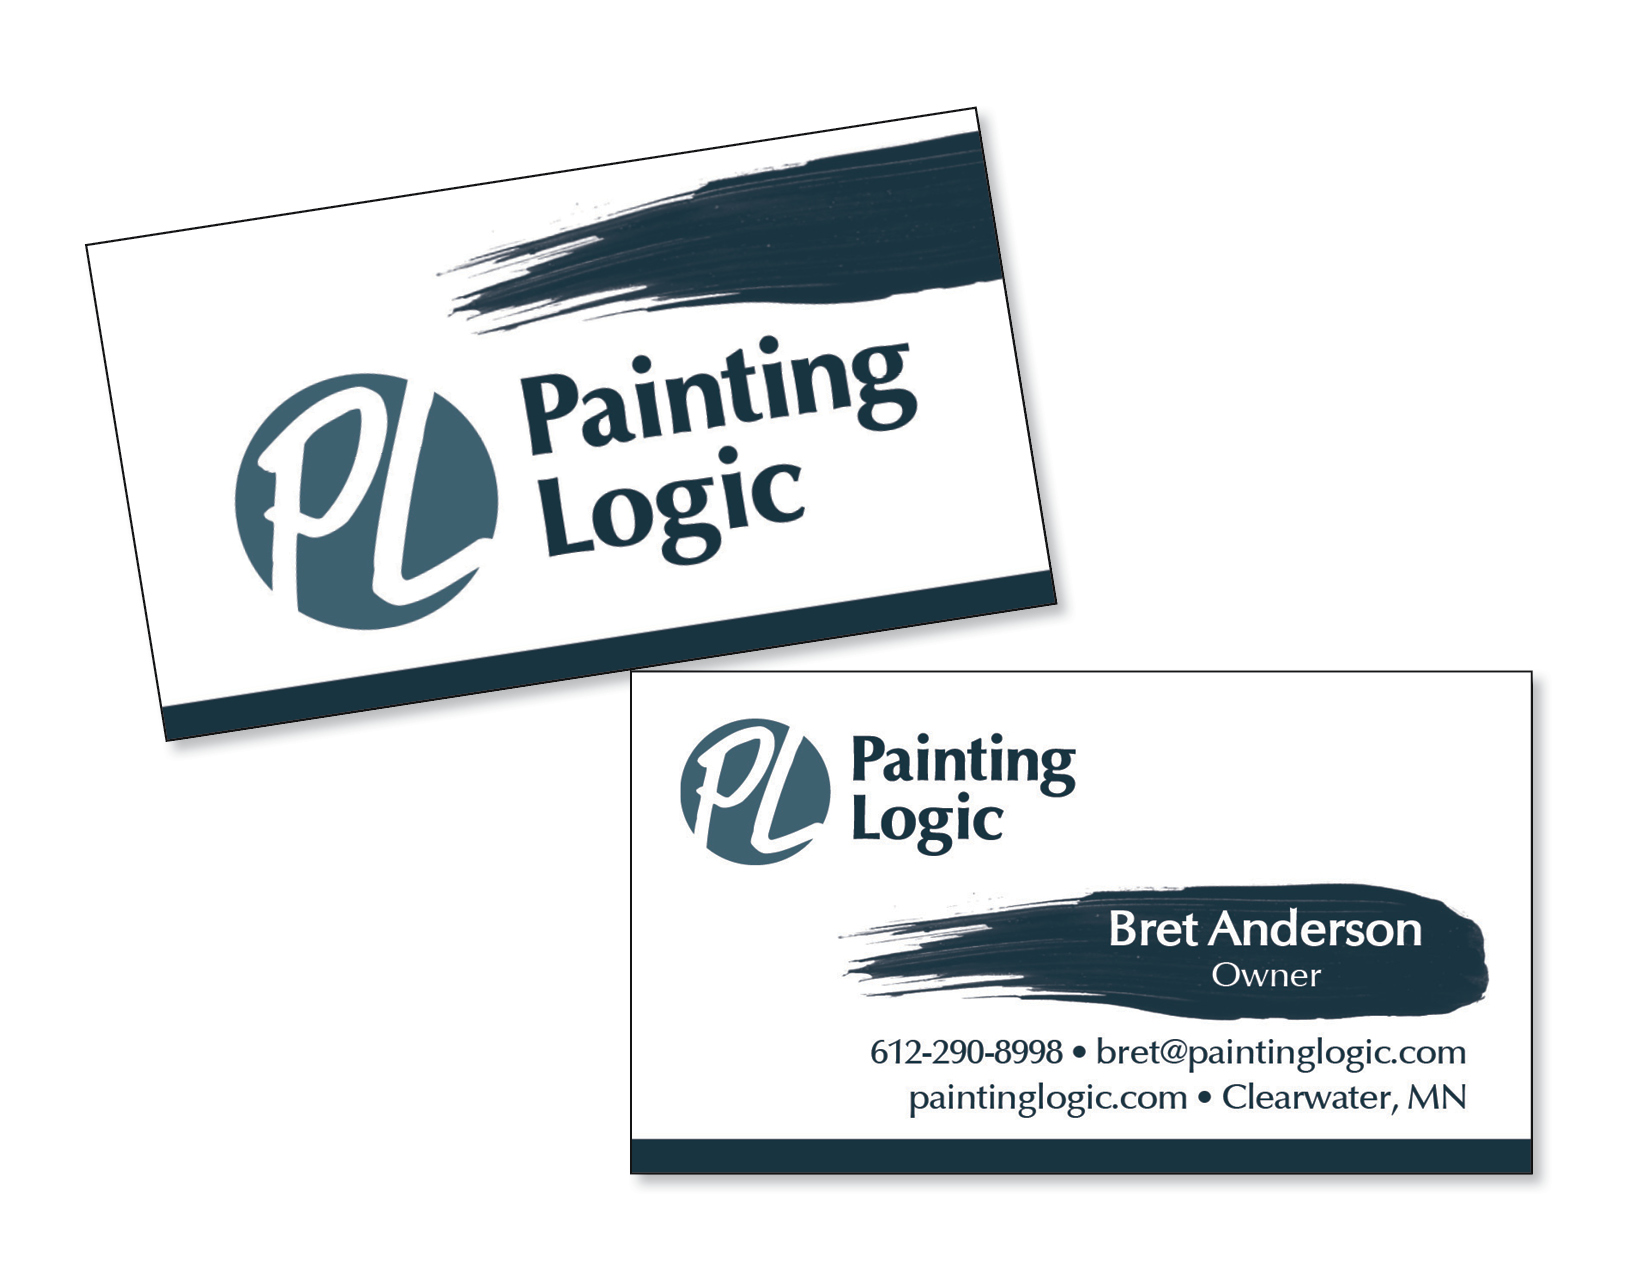 Business Cards, Painting Logic